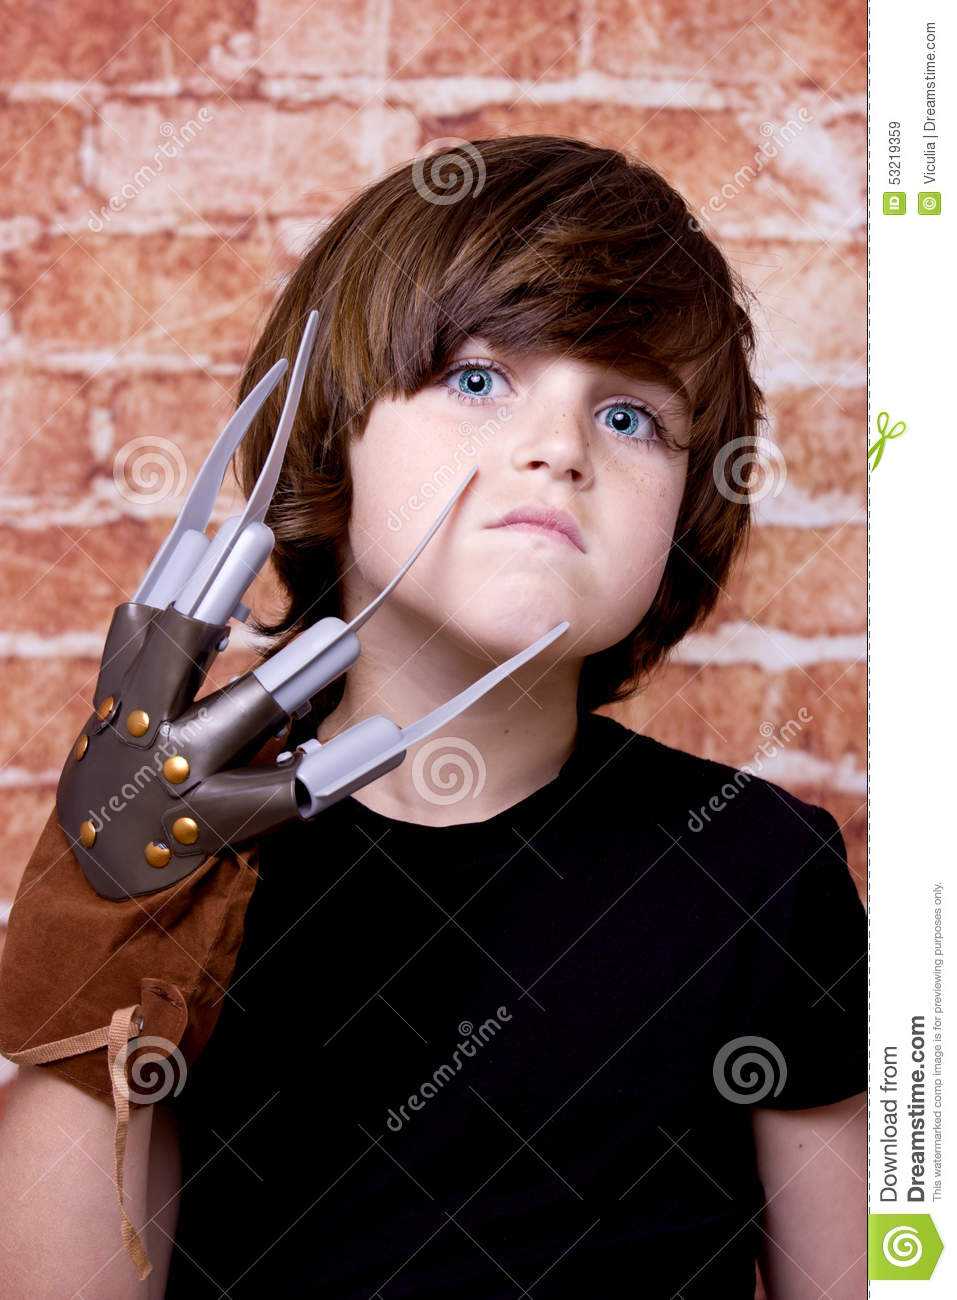 Kid with scary nails on face. Brick wall